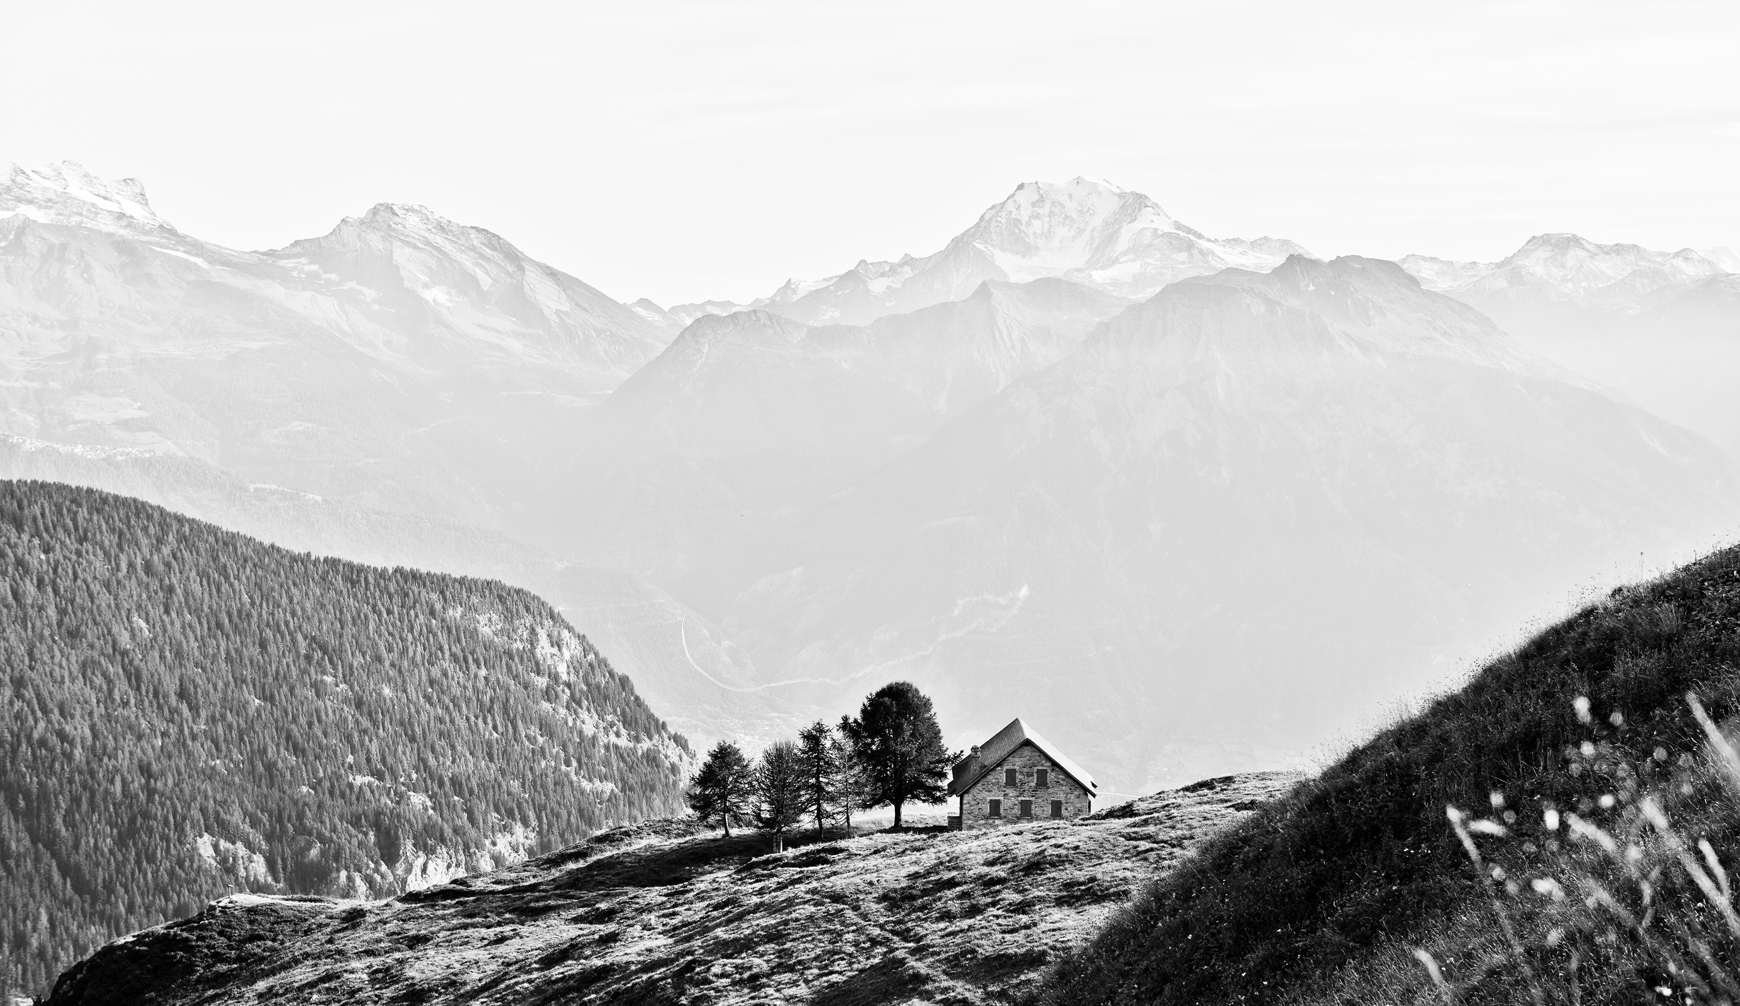 A Small Farmer's house on Swiss Alps